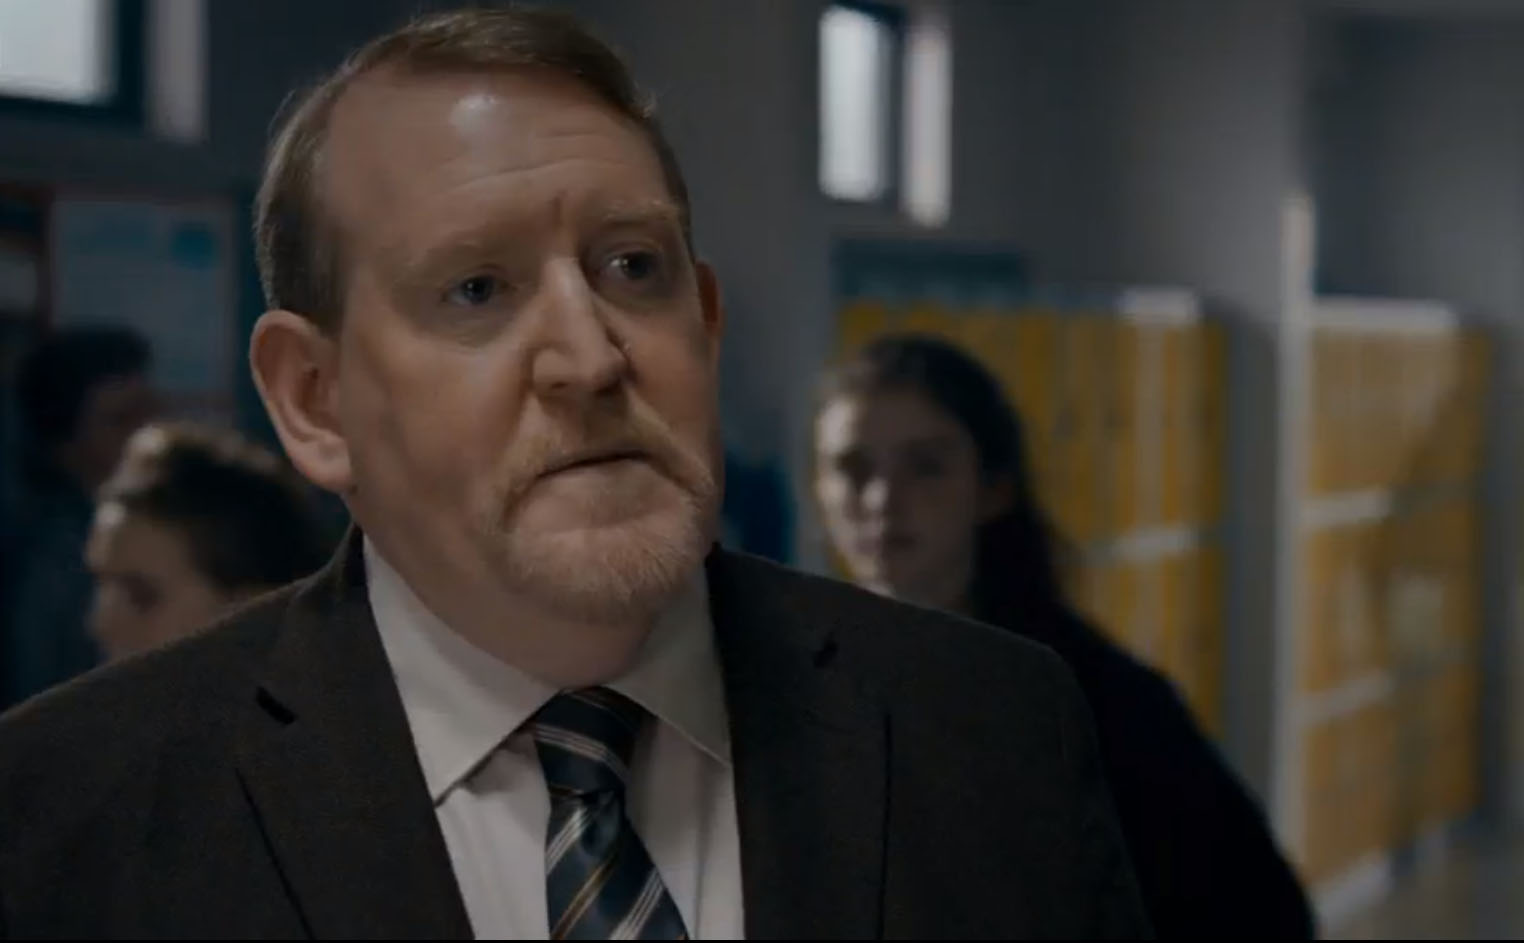 Mr Armitage played by Nigel Betts